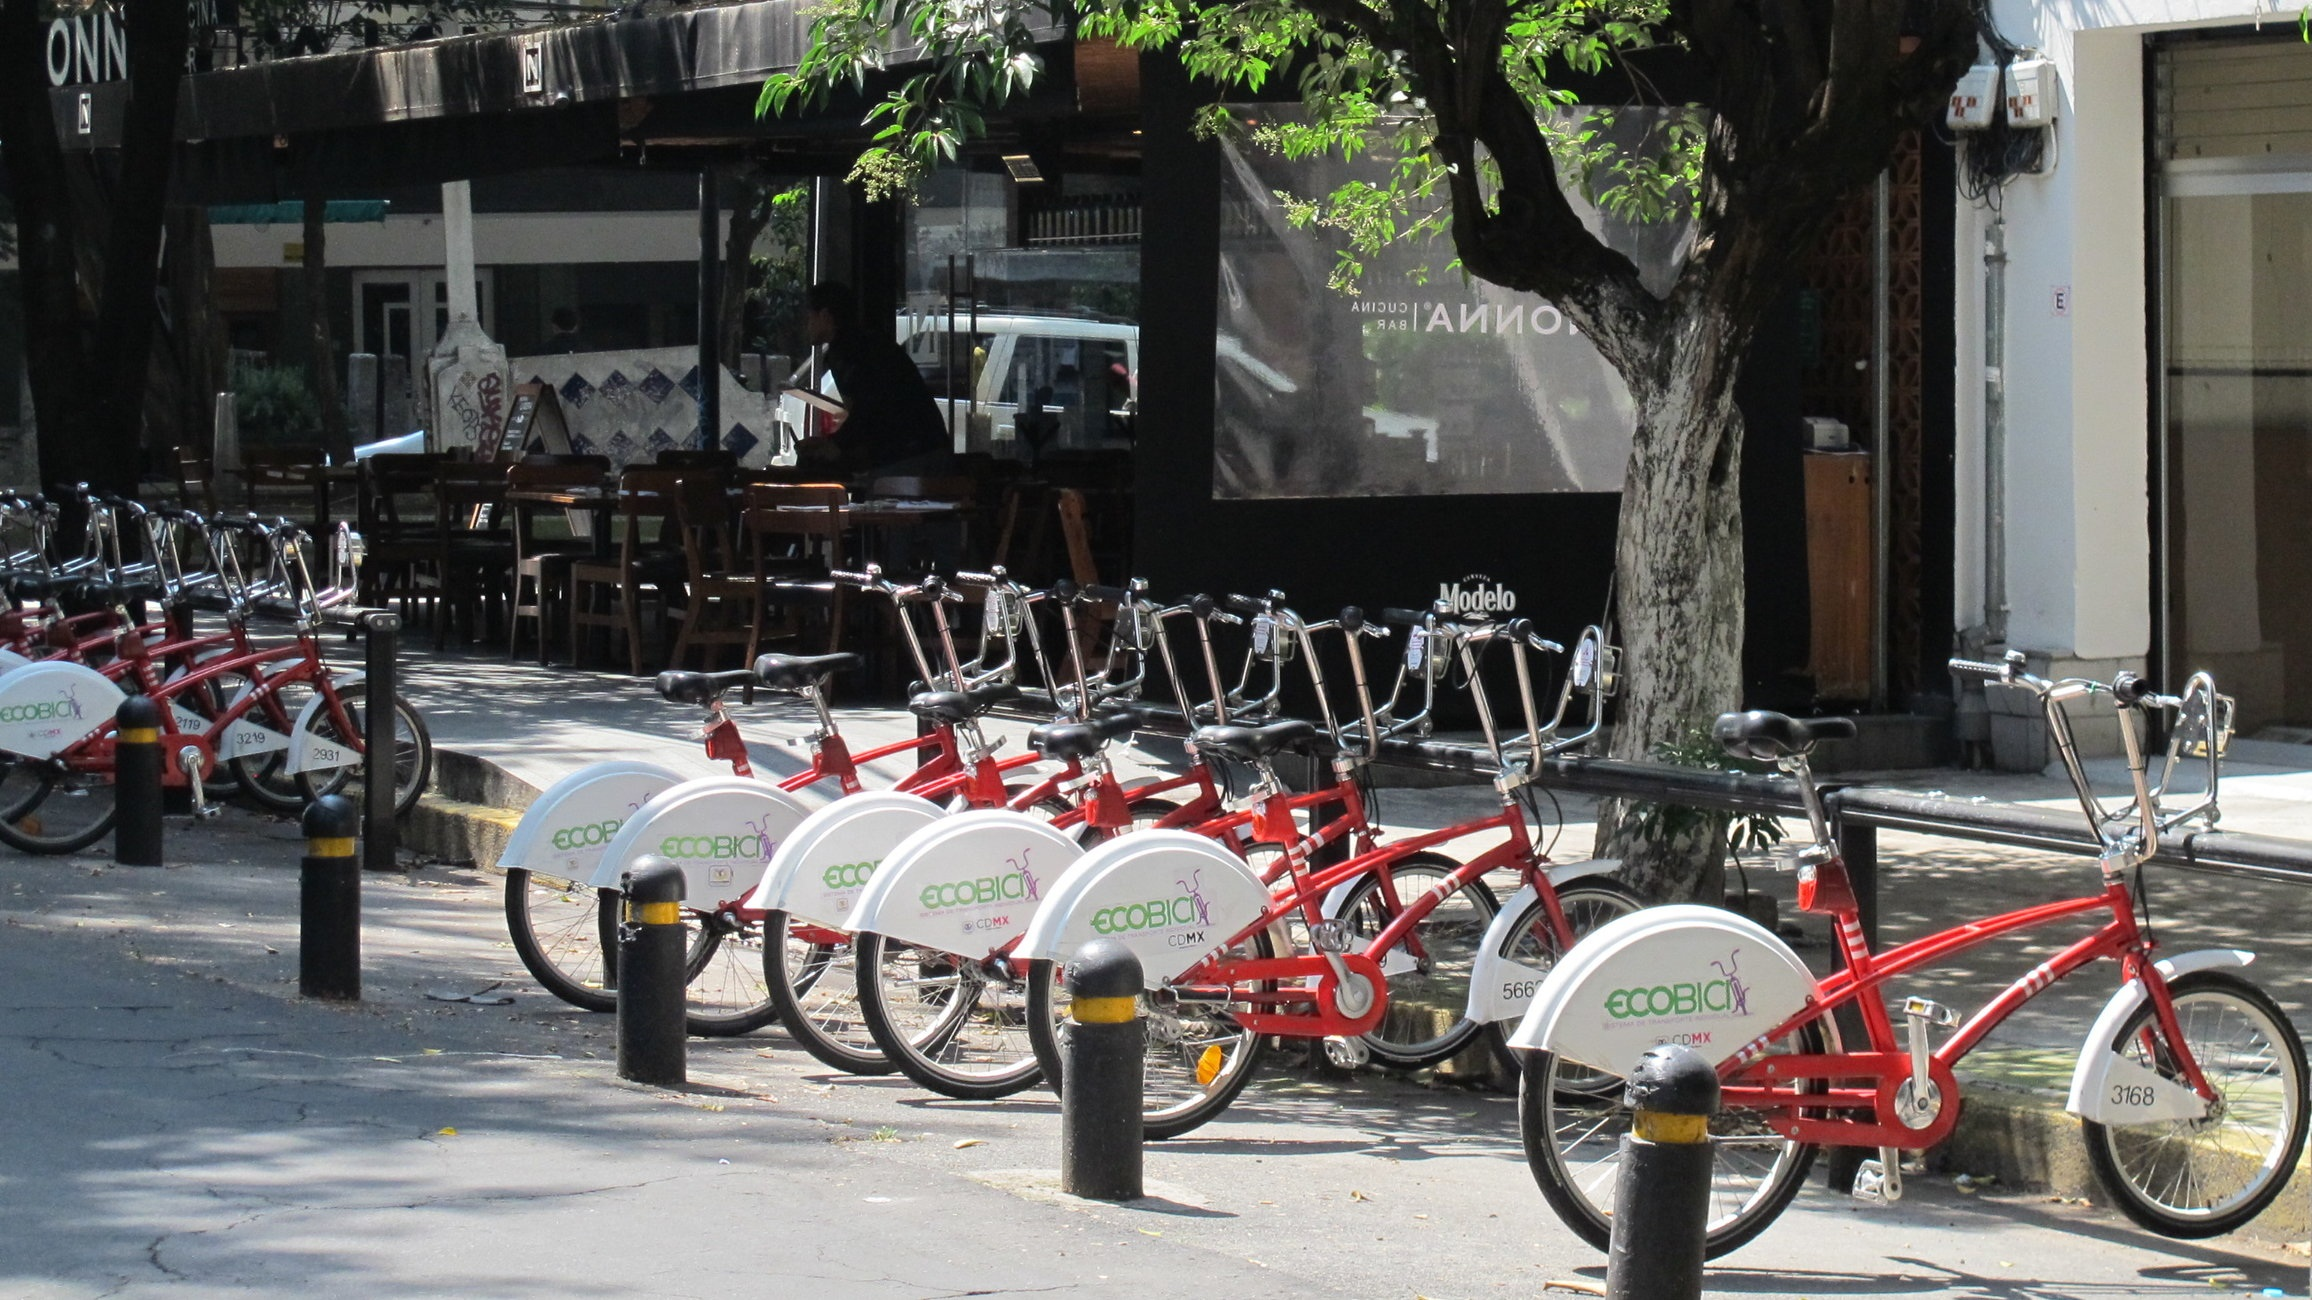 EcoBici bikes can be found all over Mexico City's most popular neighborhoods.